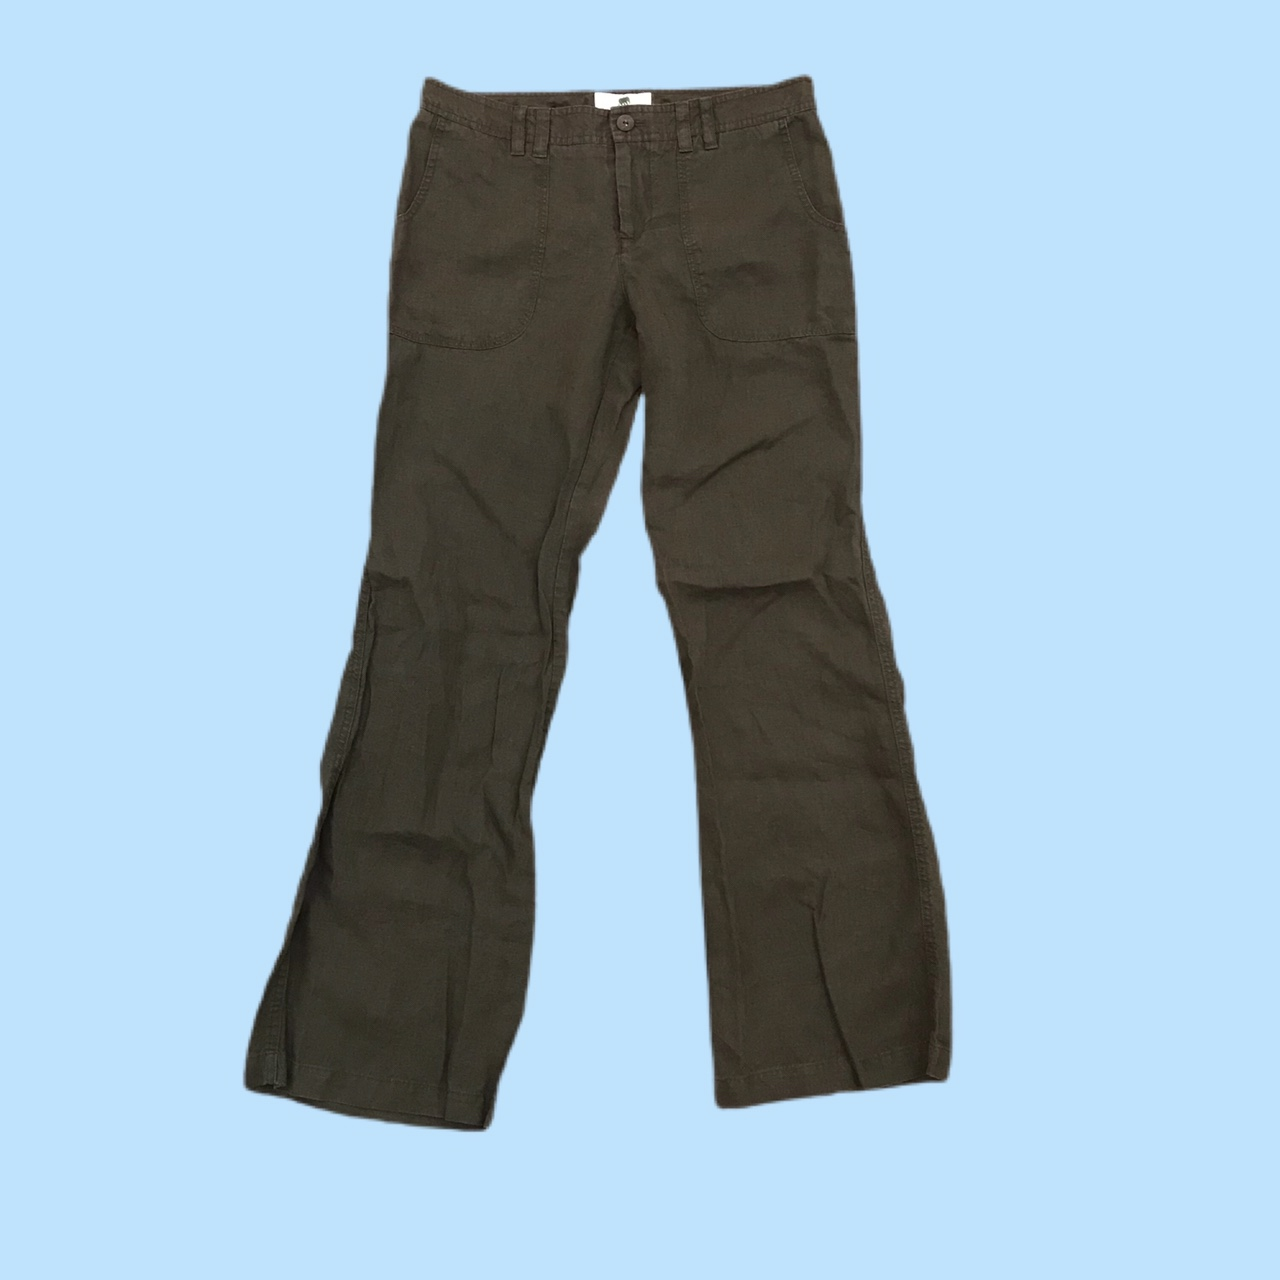 Product Image 1 - Banana Republic outlet brown linen